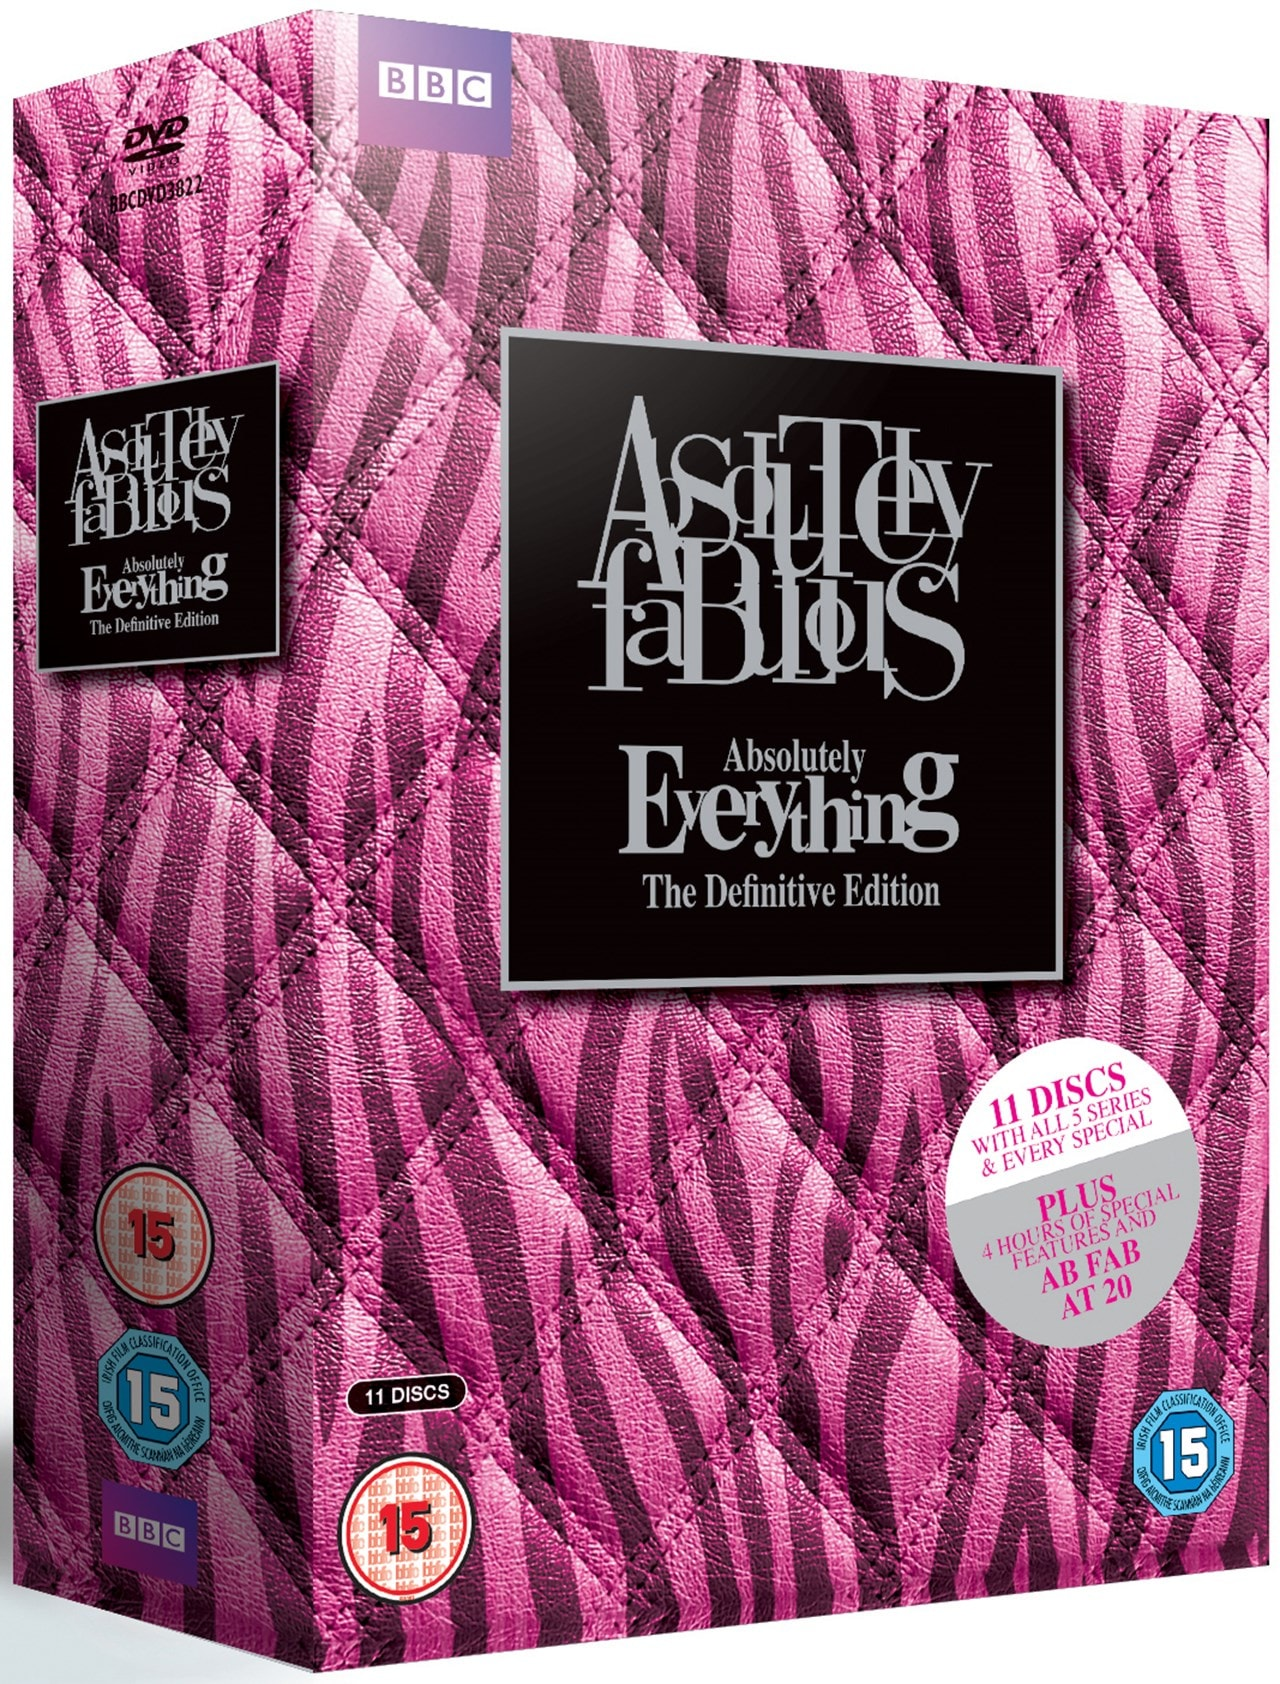 Absolutely Fabulous: Absolutely Everything - 2